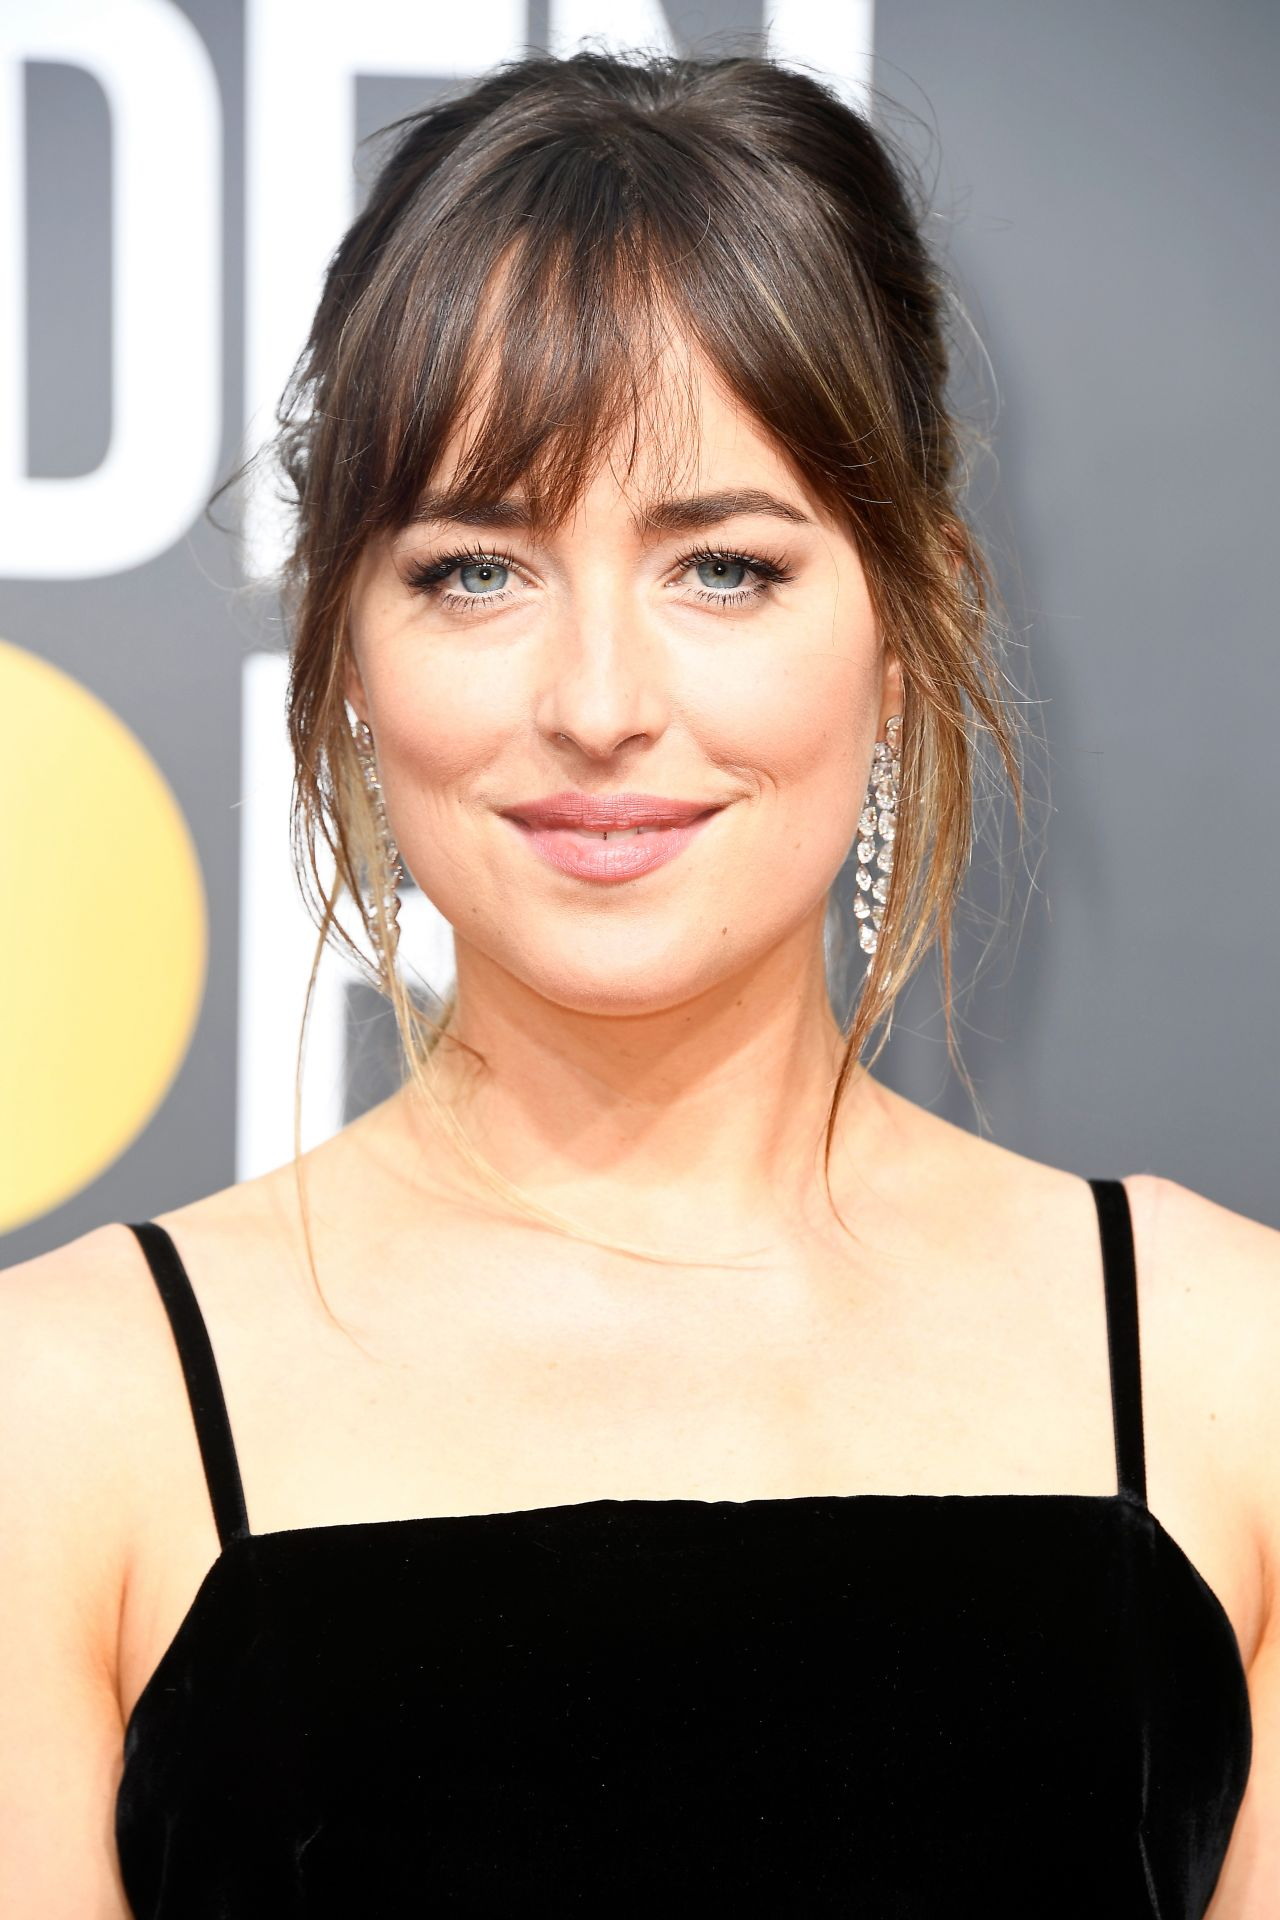 Dakota Johnson Style Clothes Outfits And Fashion Celebmafia Even find alternatives to celebmafia if you prefer. dakota johnson style clothes outfits